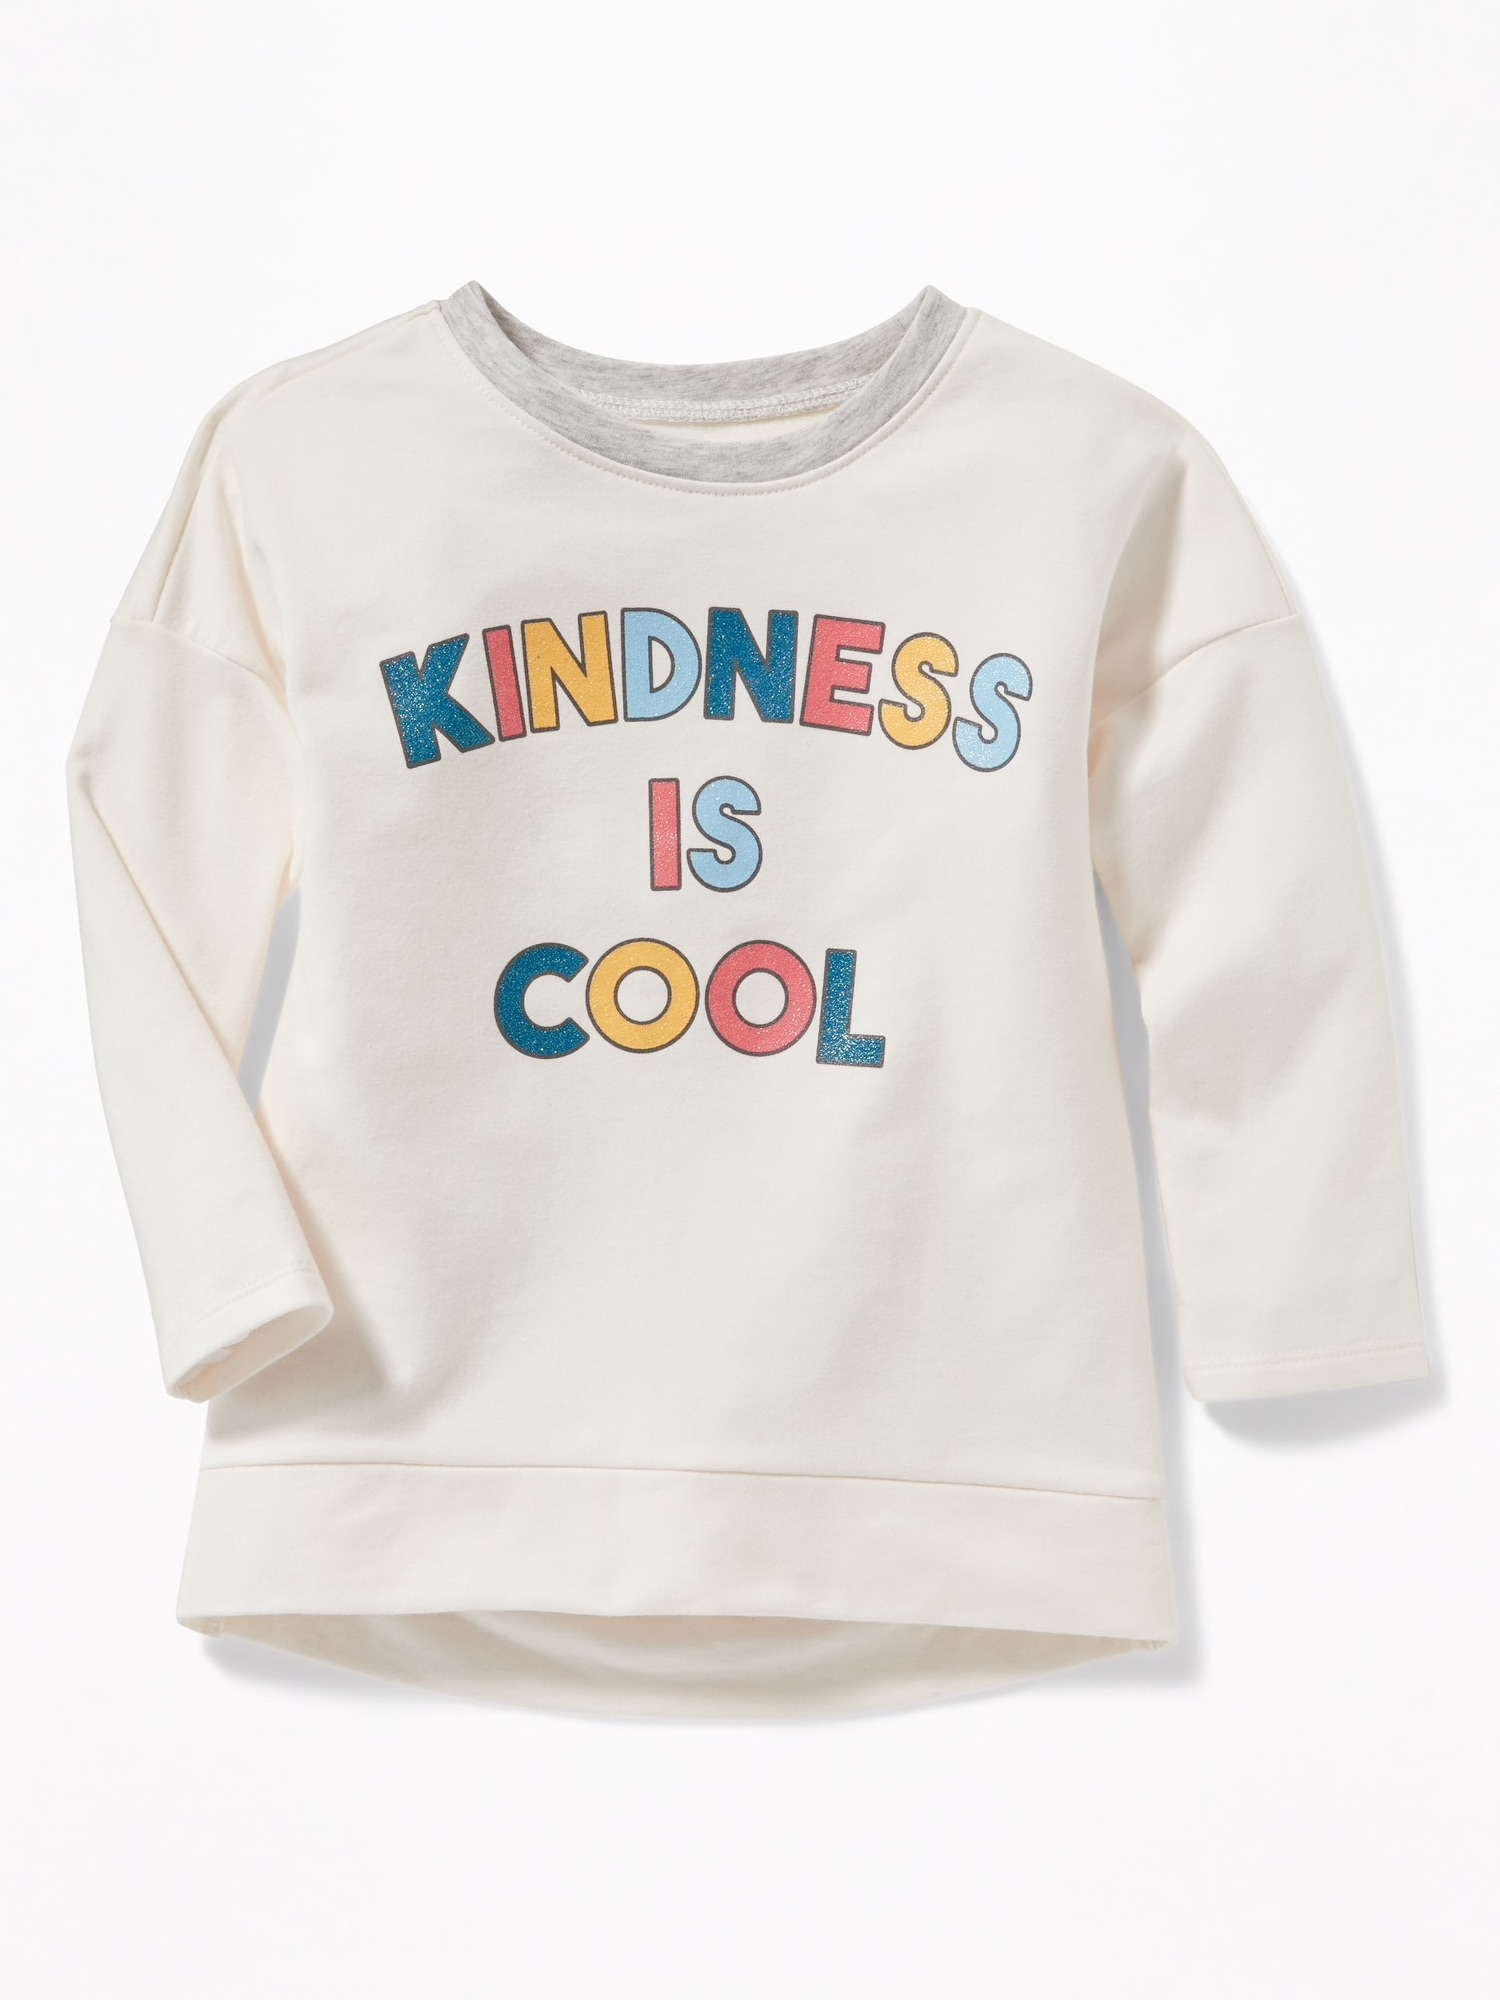 kindness is cool sweatshirt.jpg